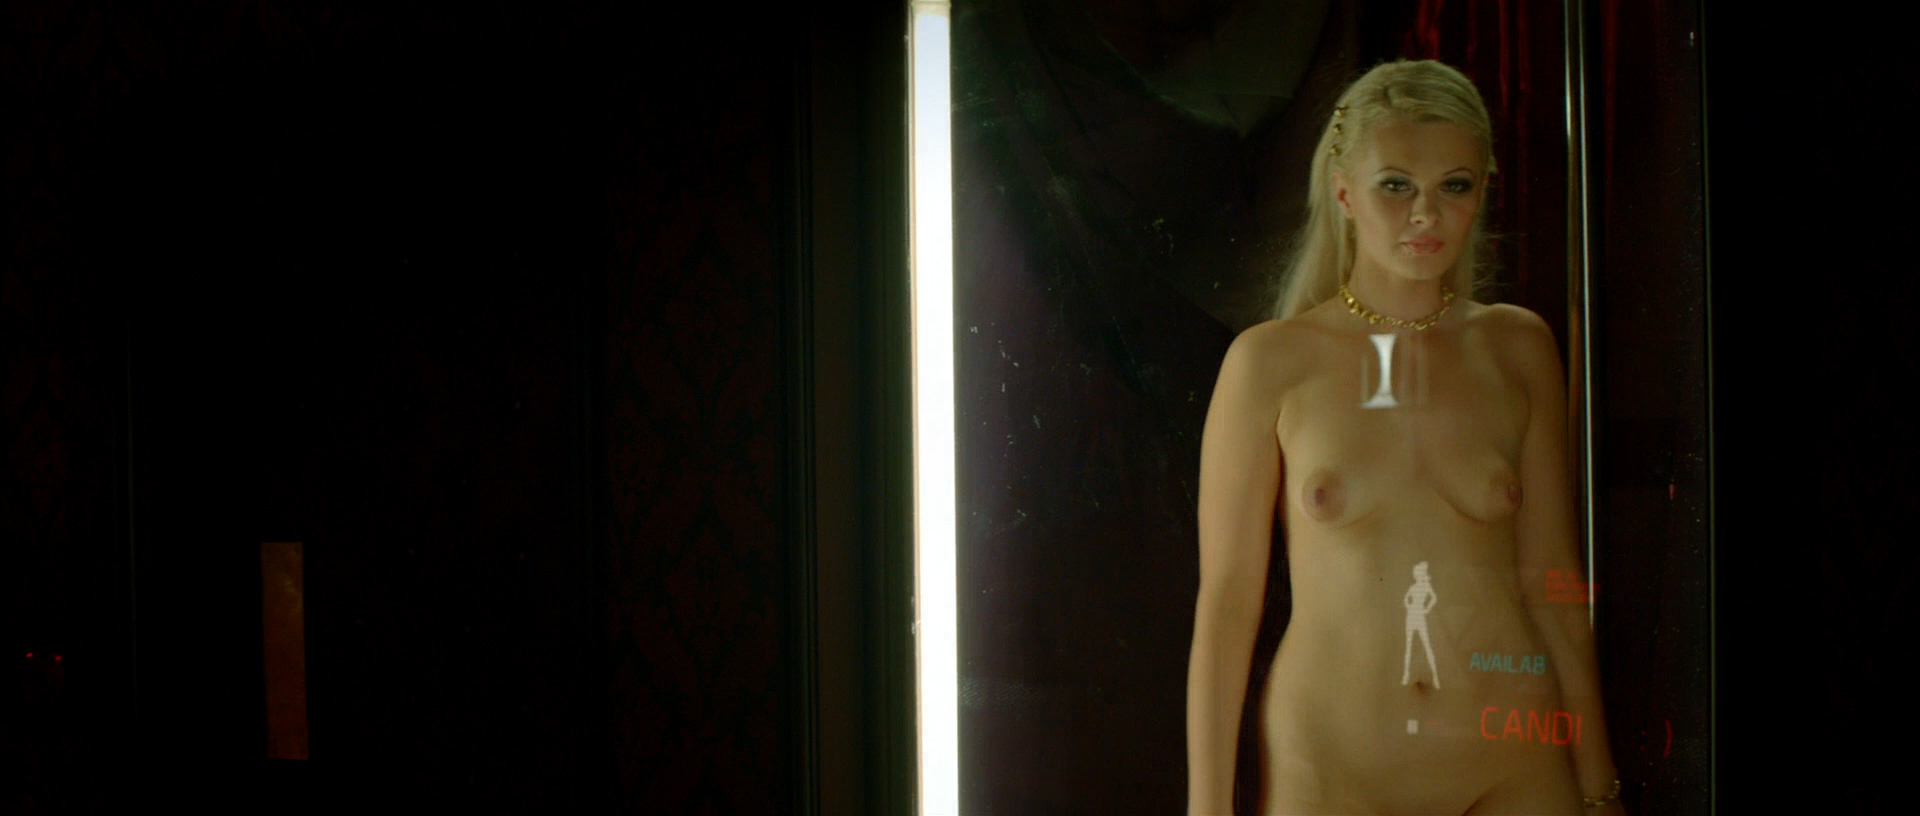 Alexis Knapp nude butt naked and very hot and few others full nude - The Anomaly (2014) hd1080p (2)